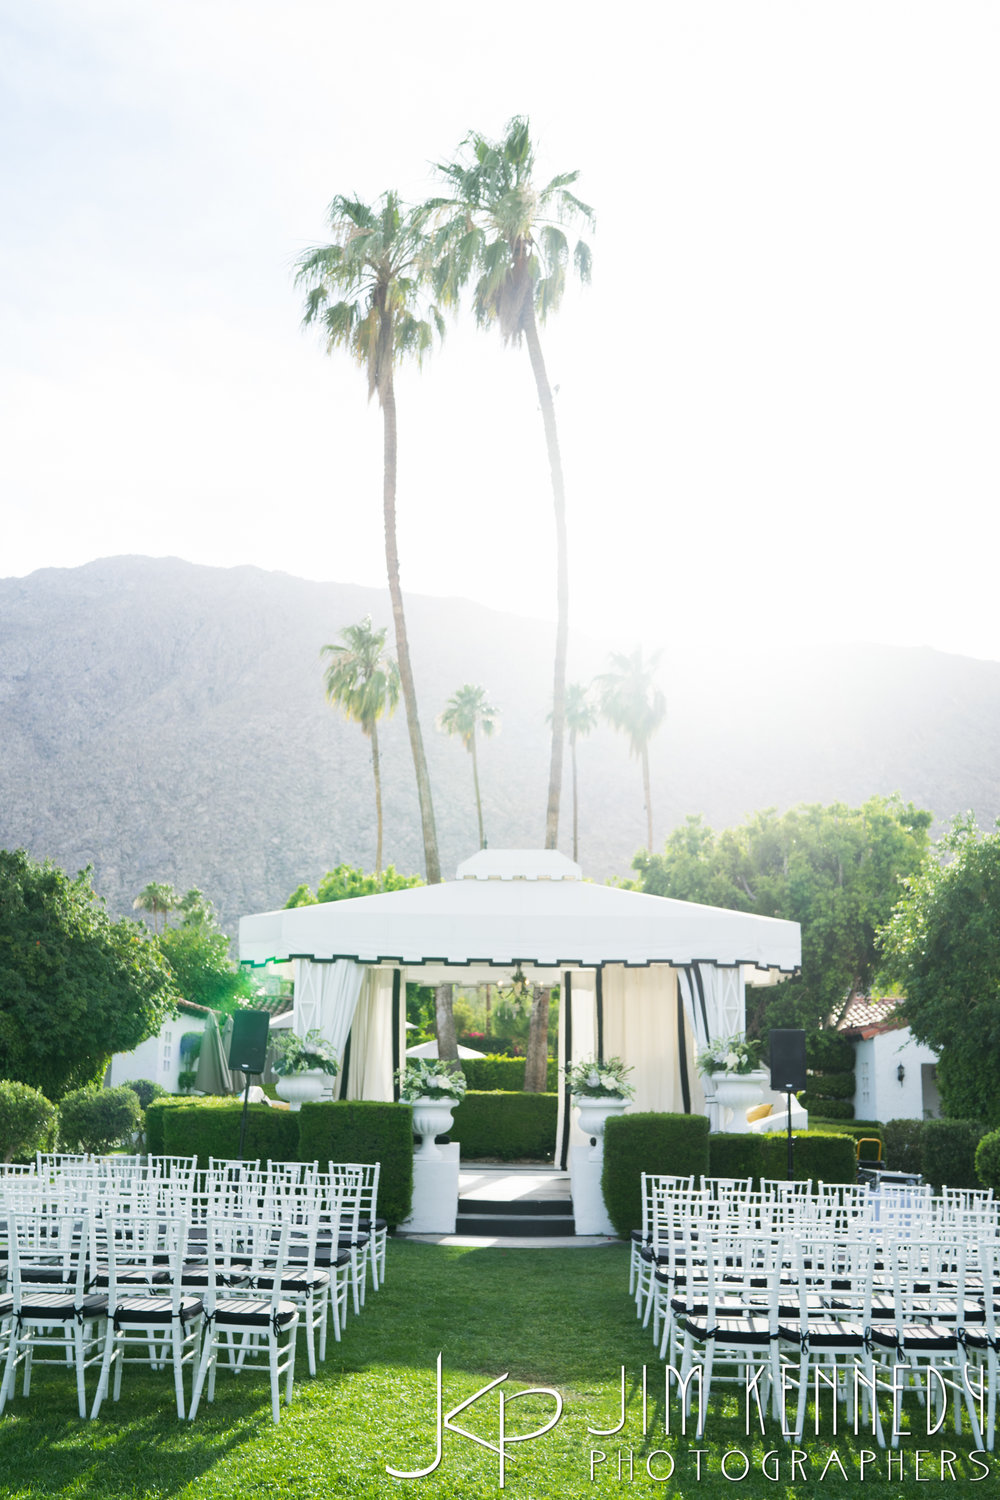 palm-springs-wedding-jim-kennedy-photographers_0166.JPG